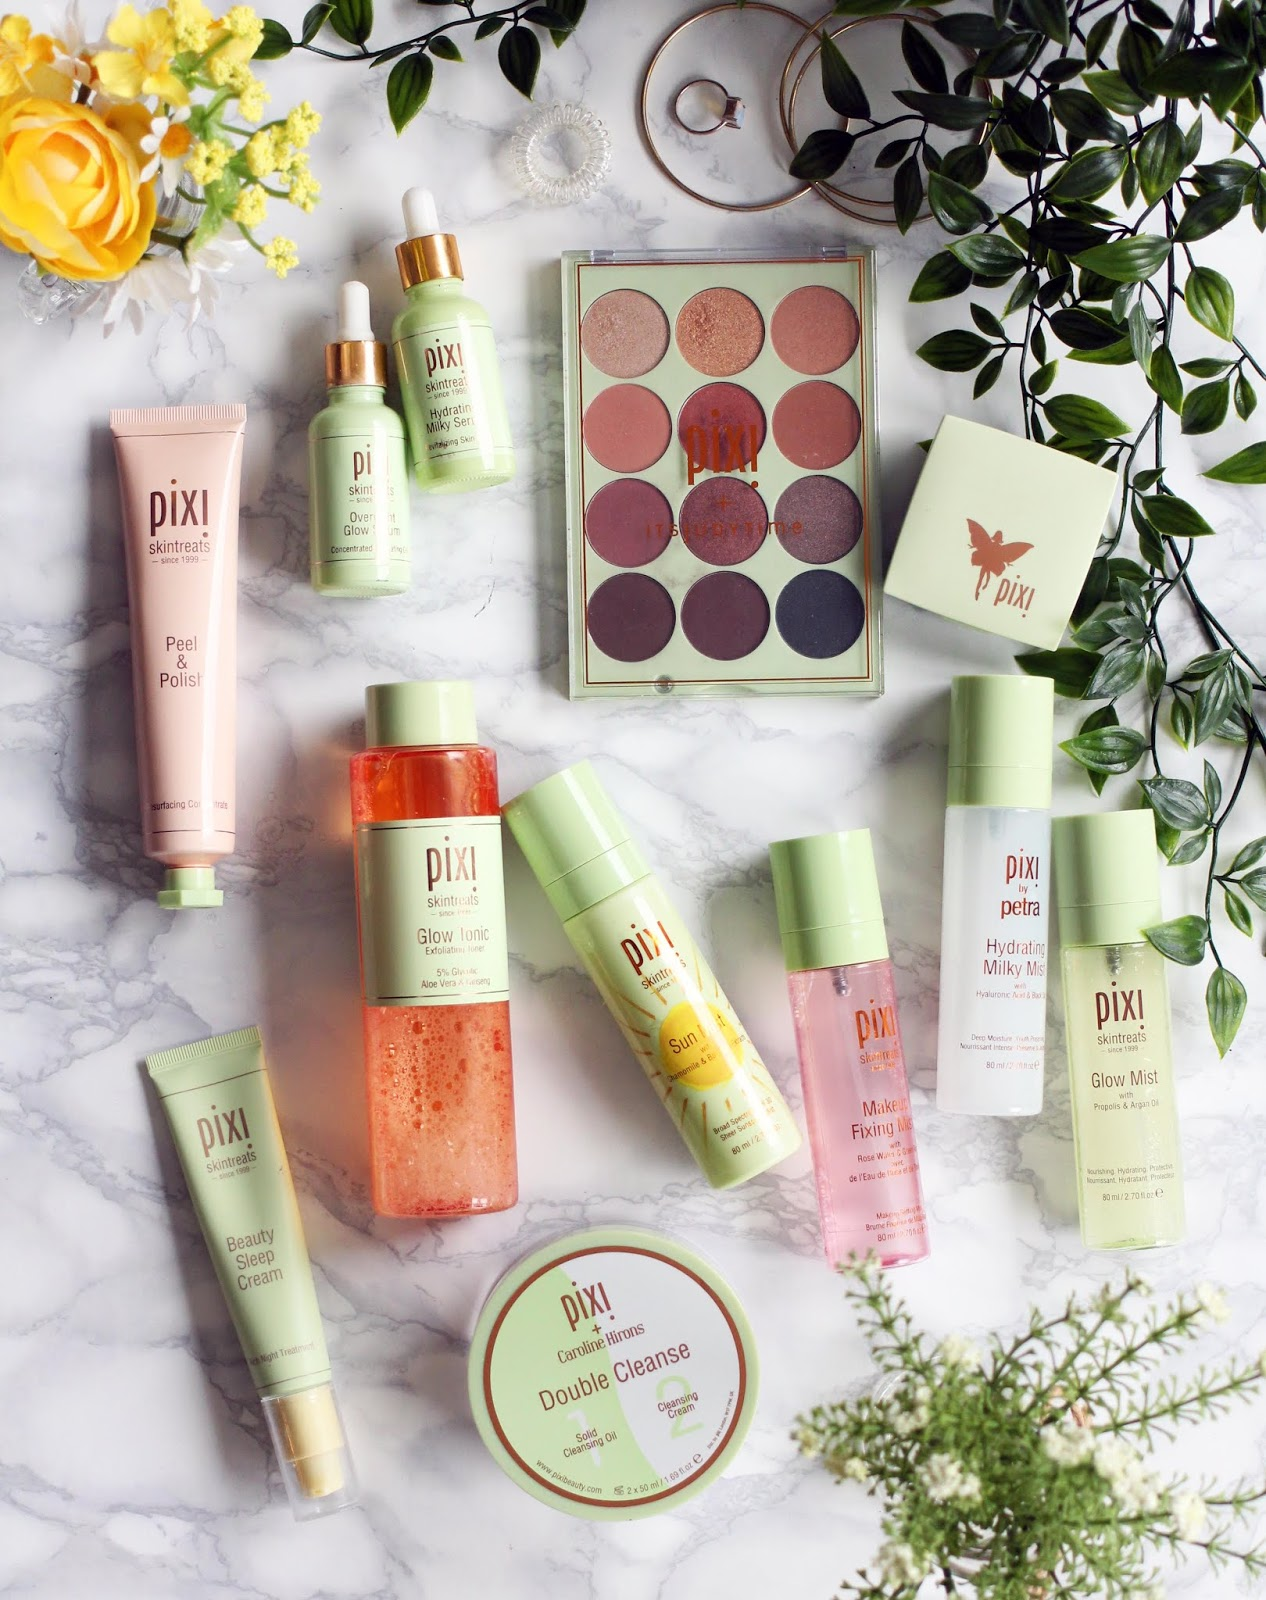 Pixi Beauty // Brand Focus